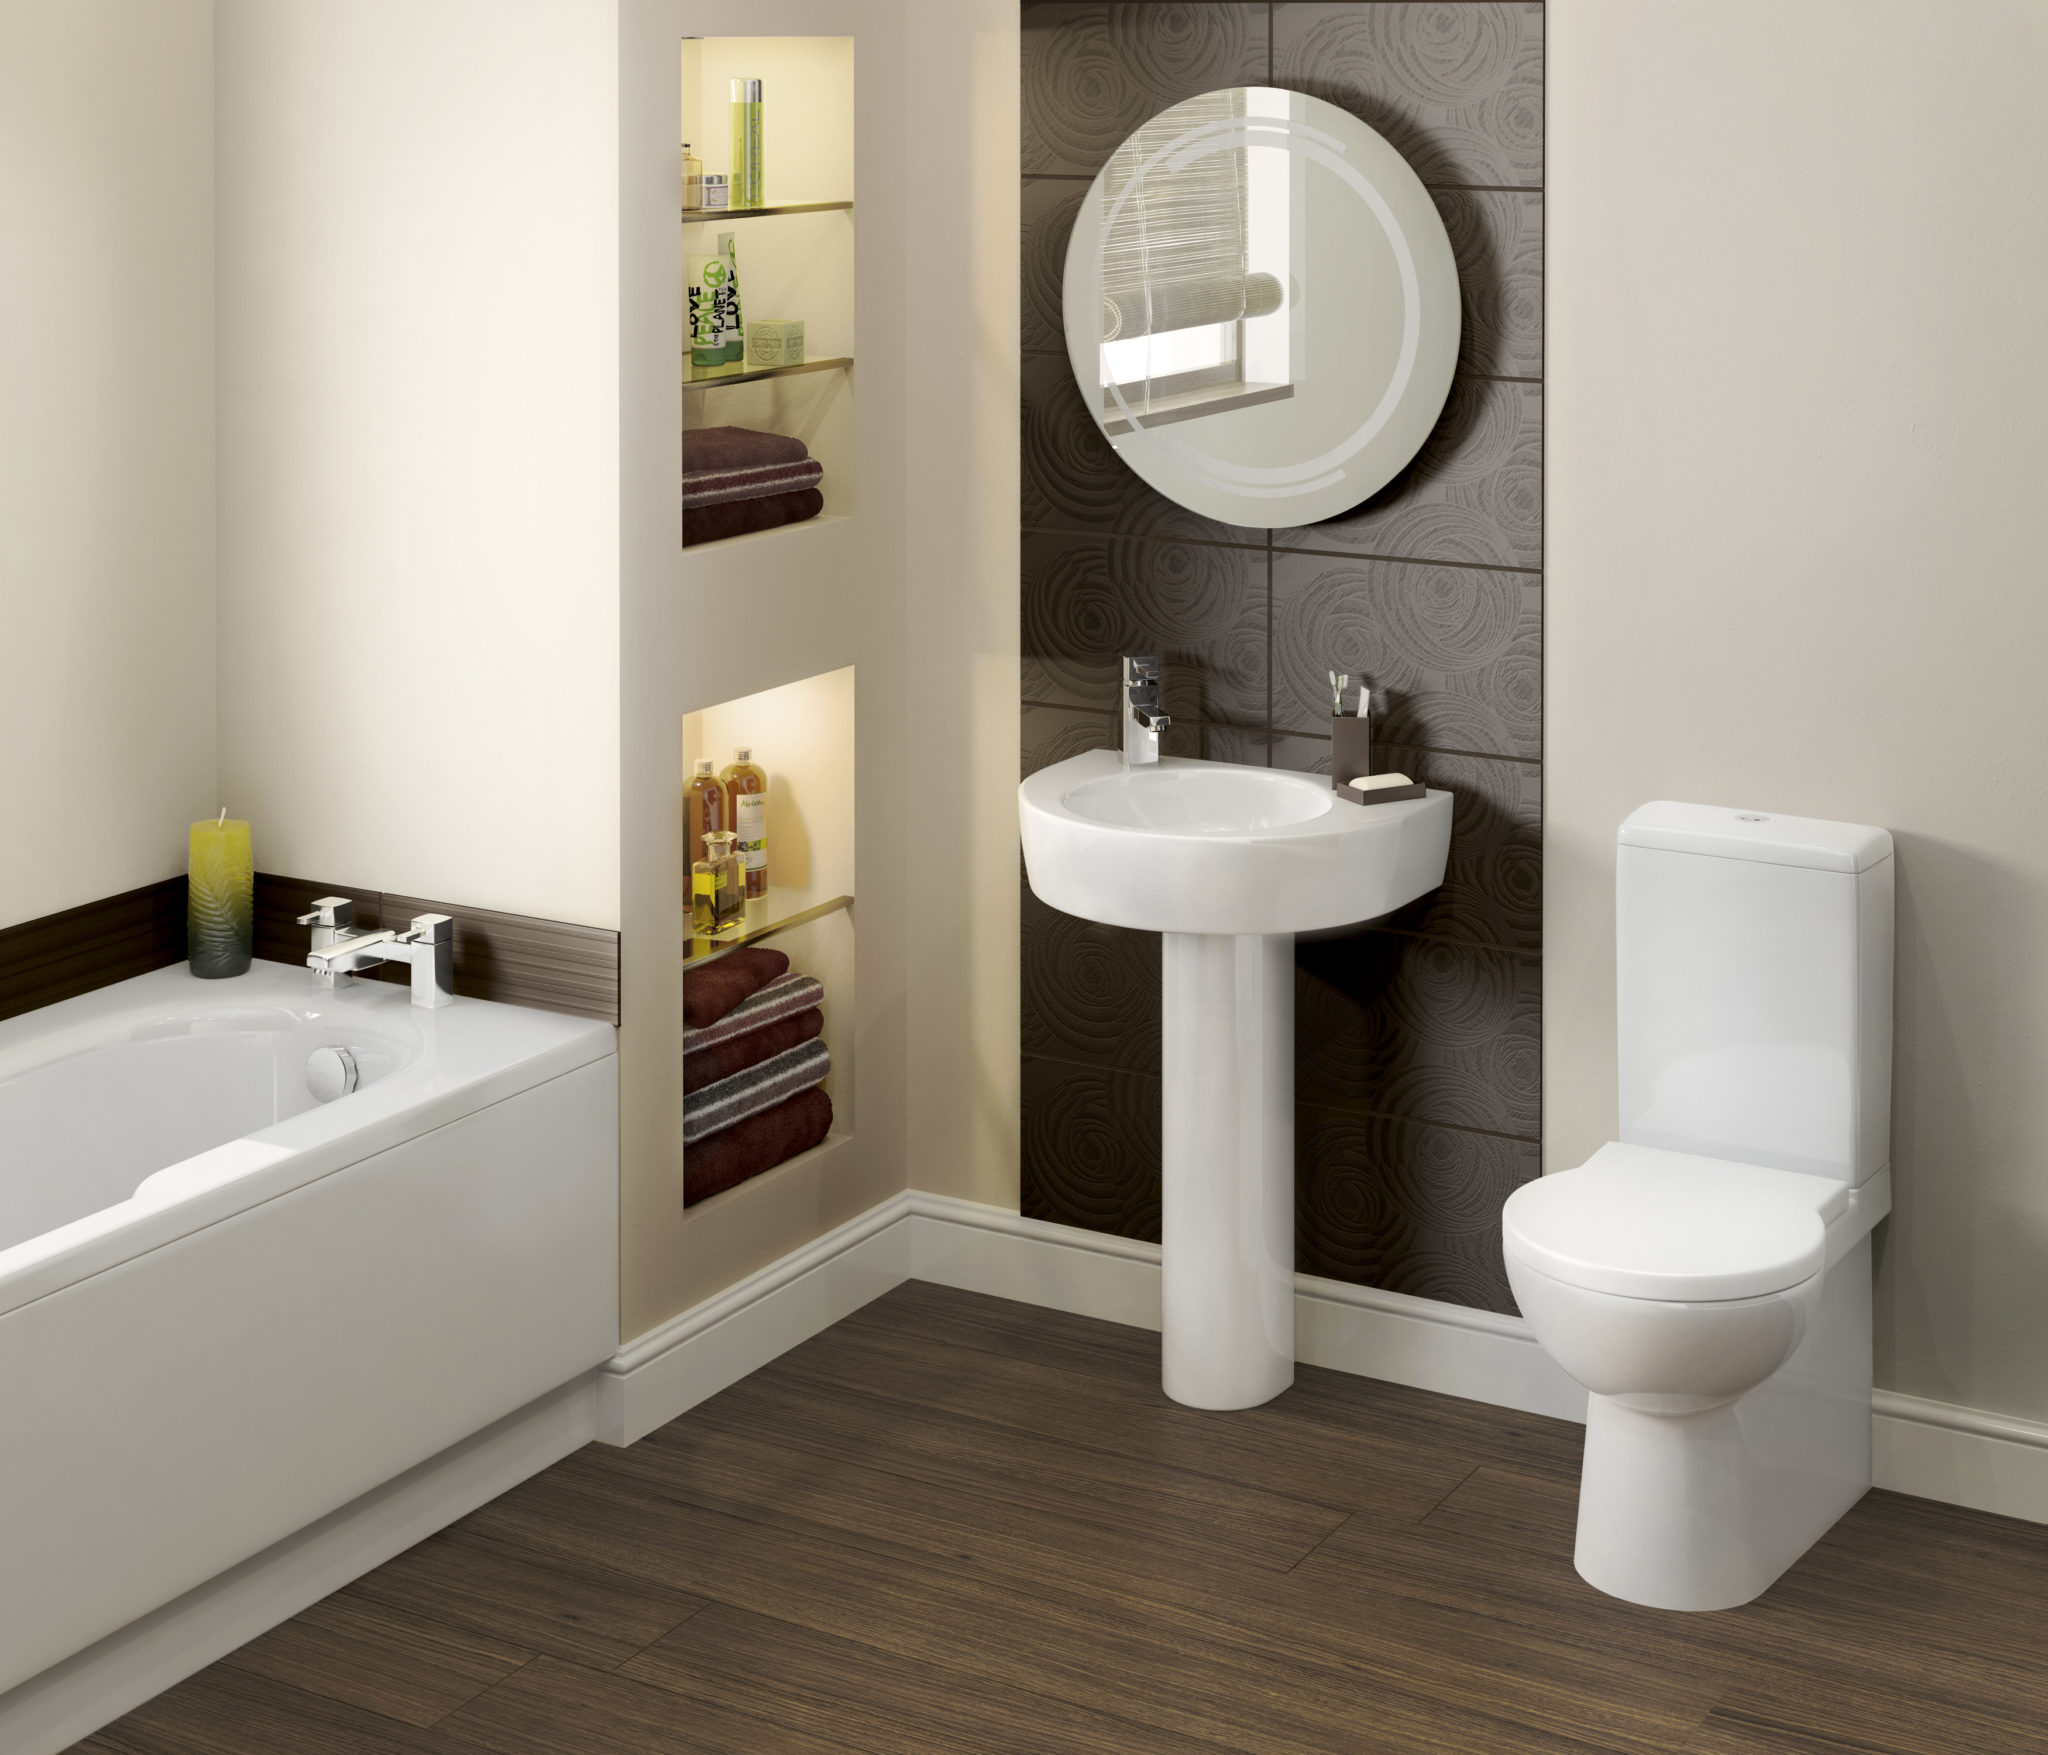 Incroyable How To Choose A Plumbing Contractor For Your Bathroom Remodel